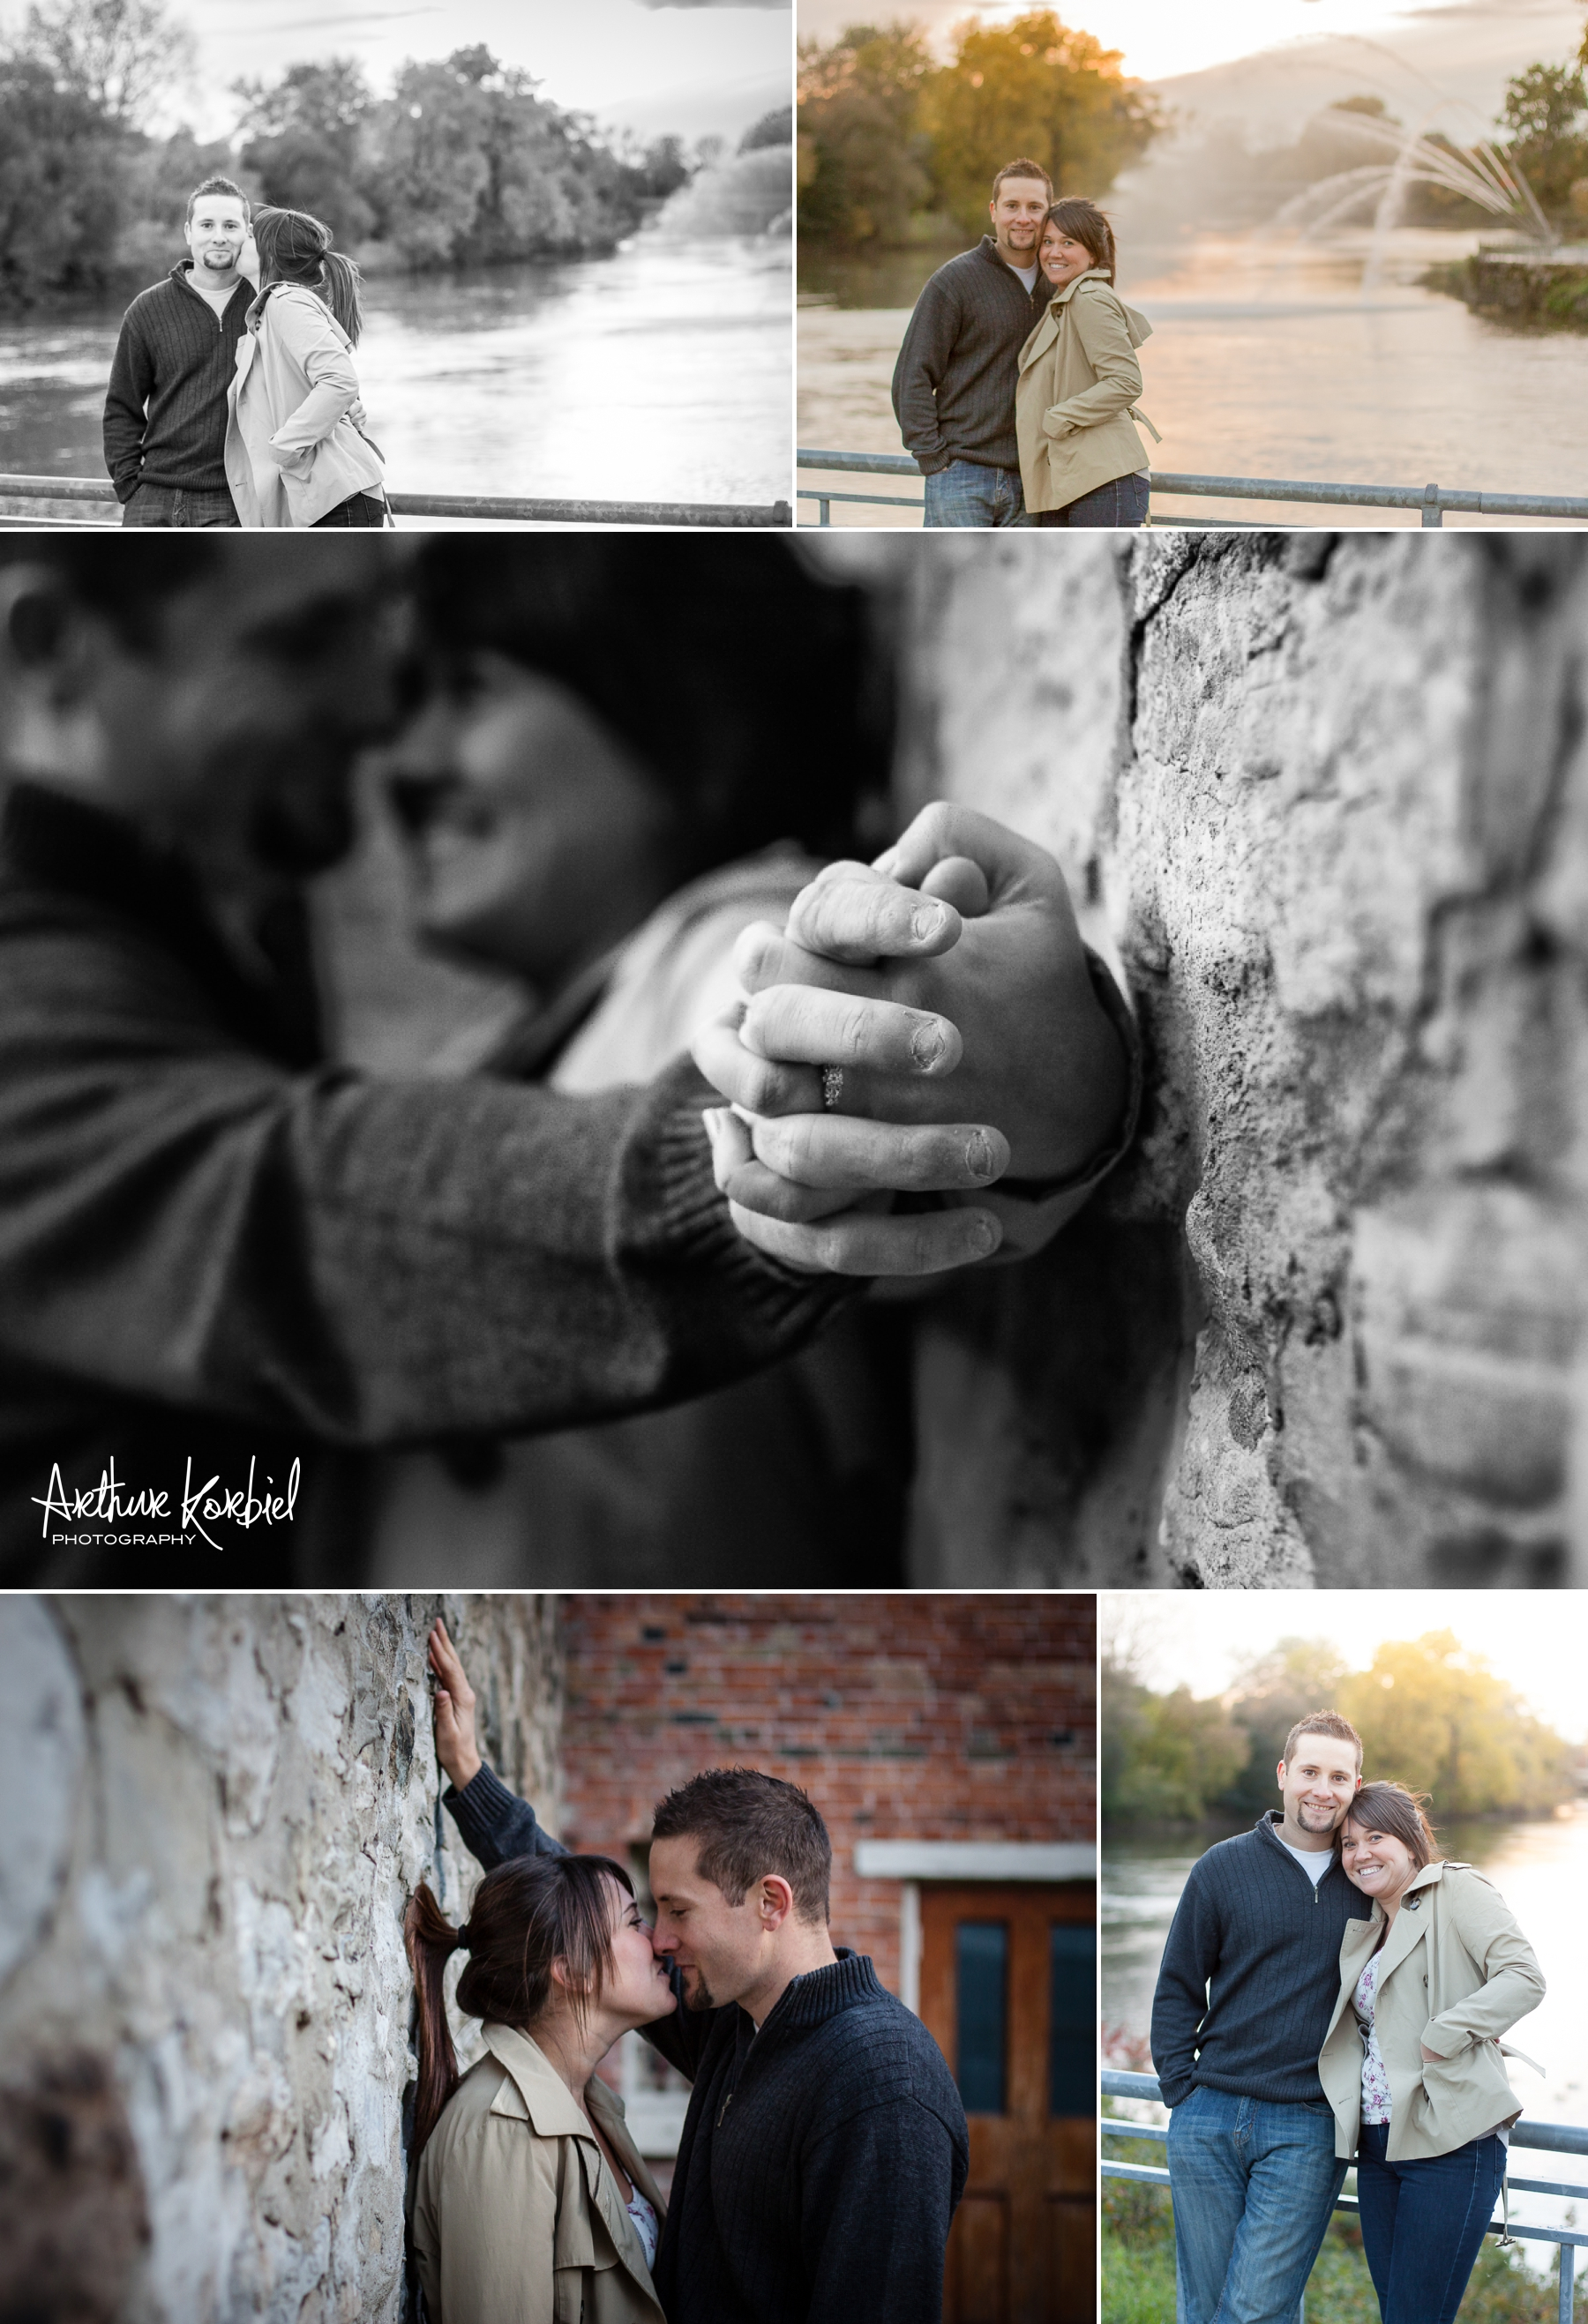 Arthur Korbiel Photography - London Engagement Photographer - Katie & Mike_006.jpg